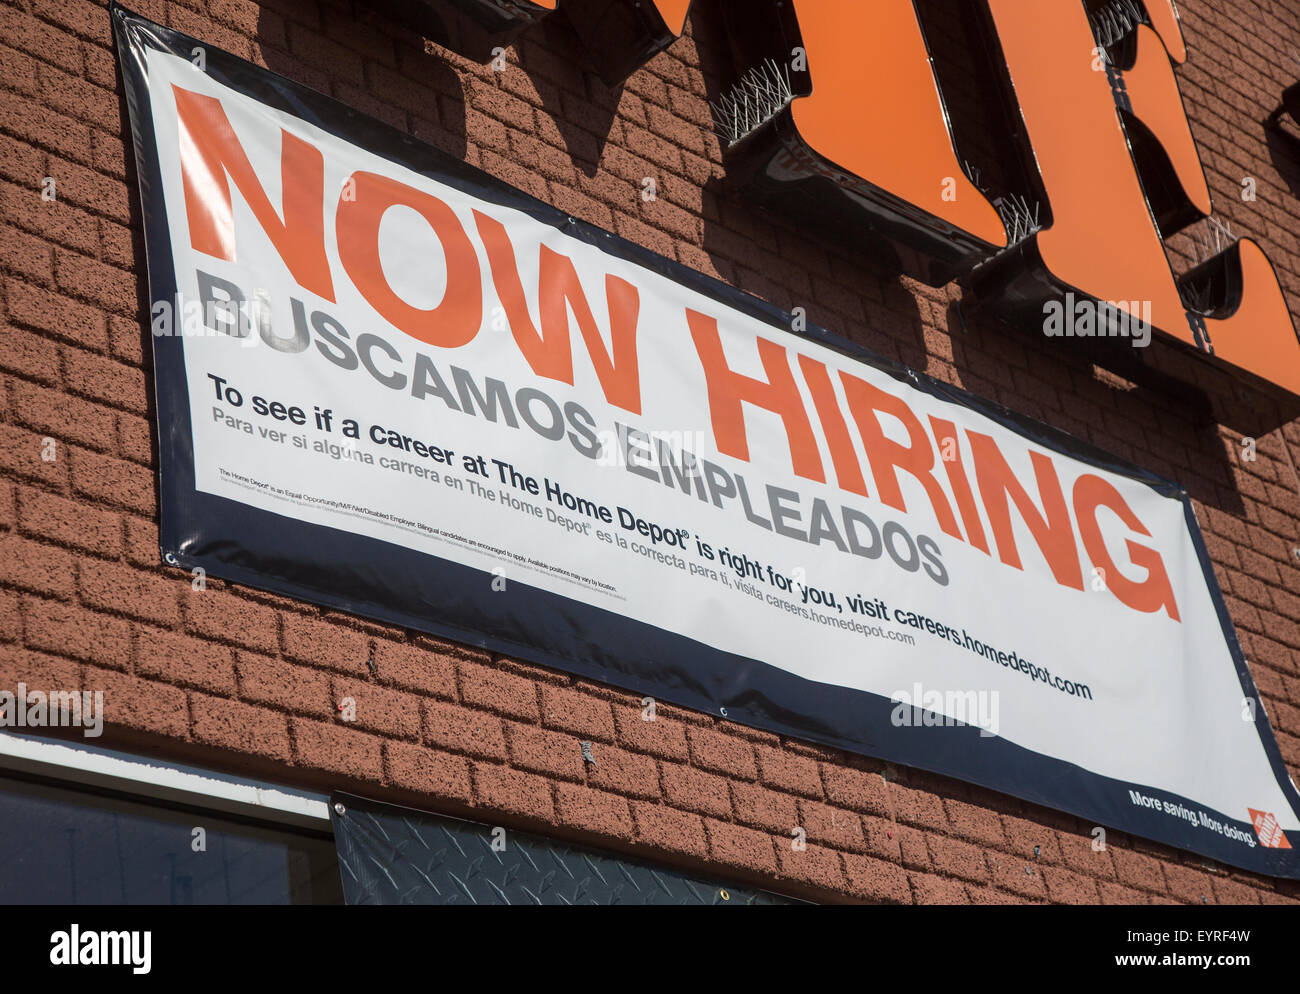 Now Hiring sign at a Home Depot Stock Photo Royalty Free Image